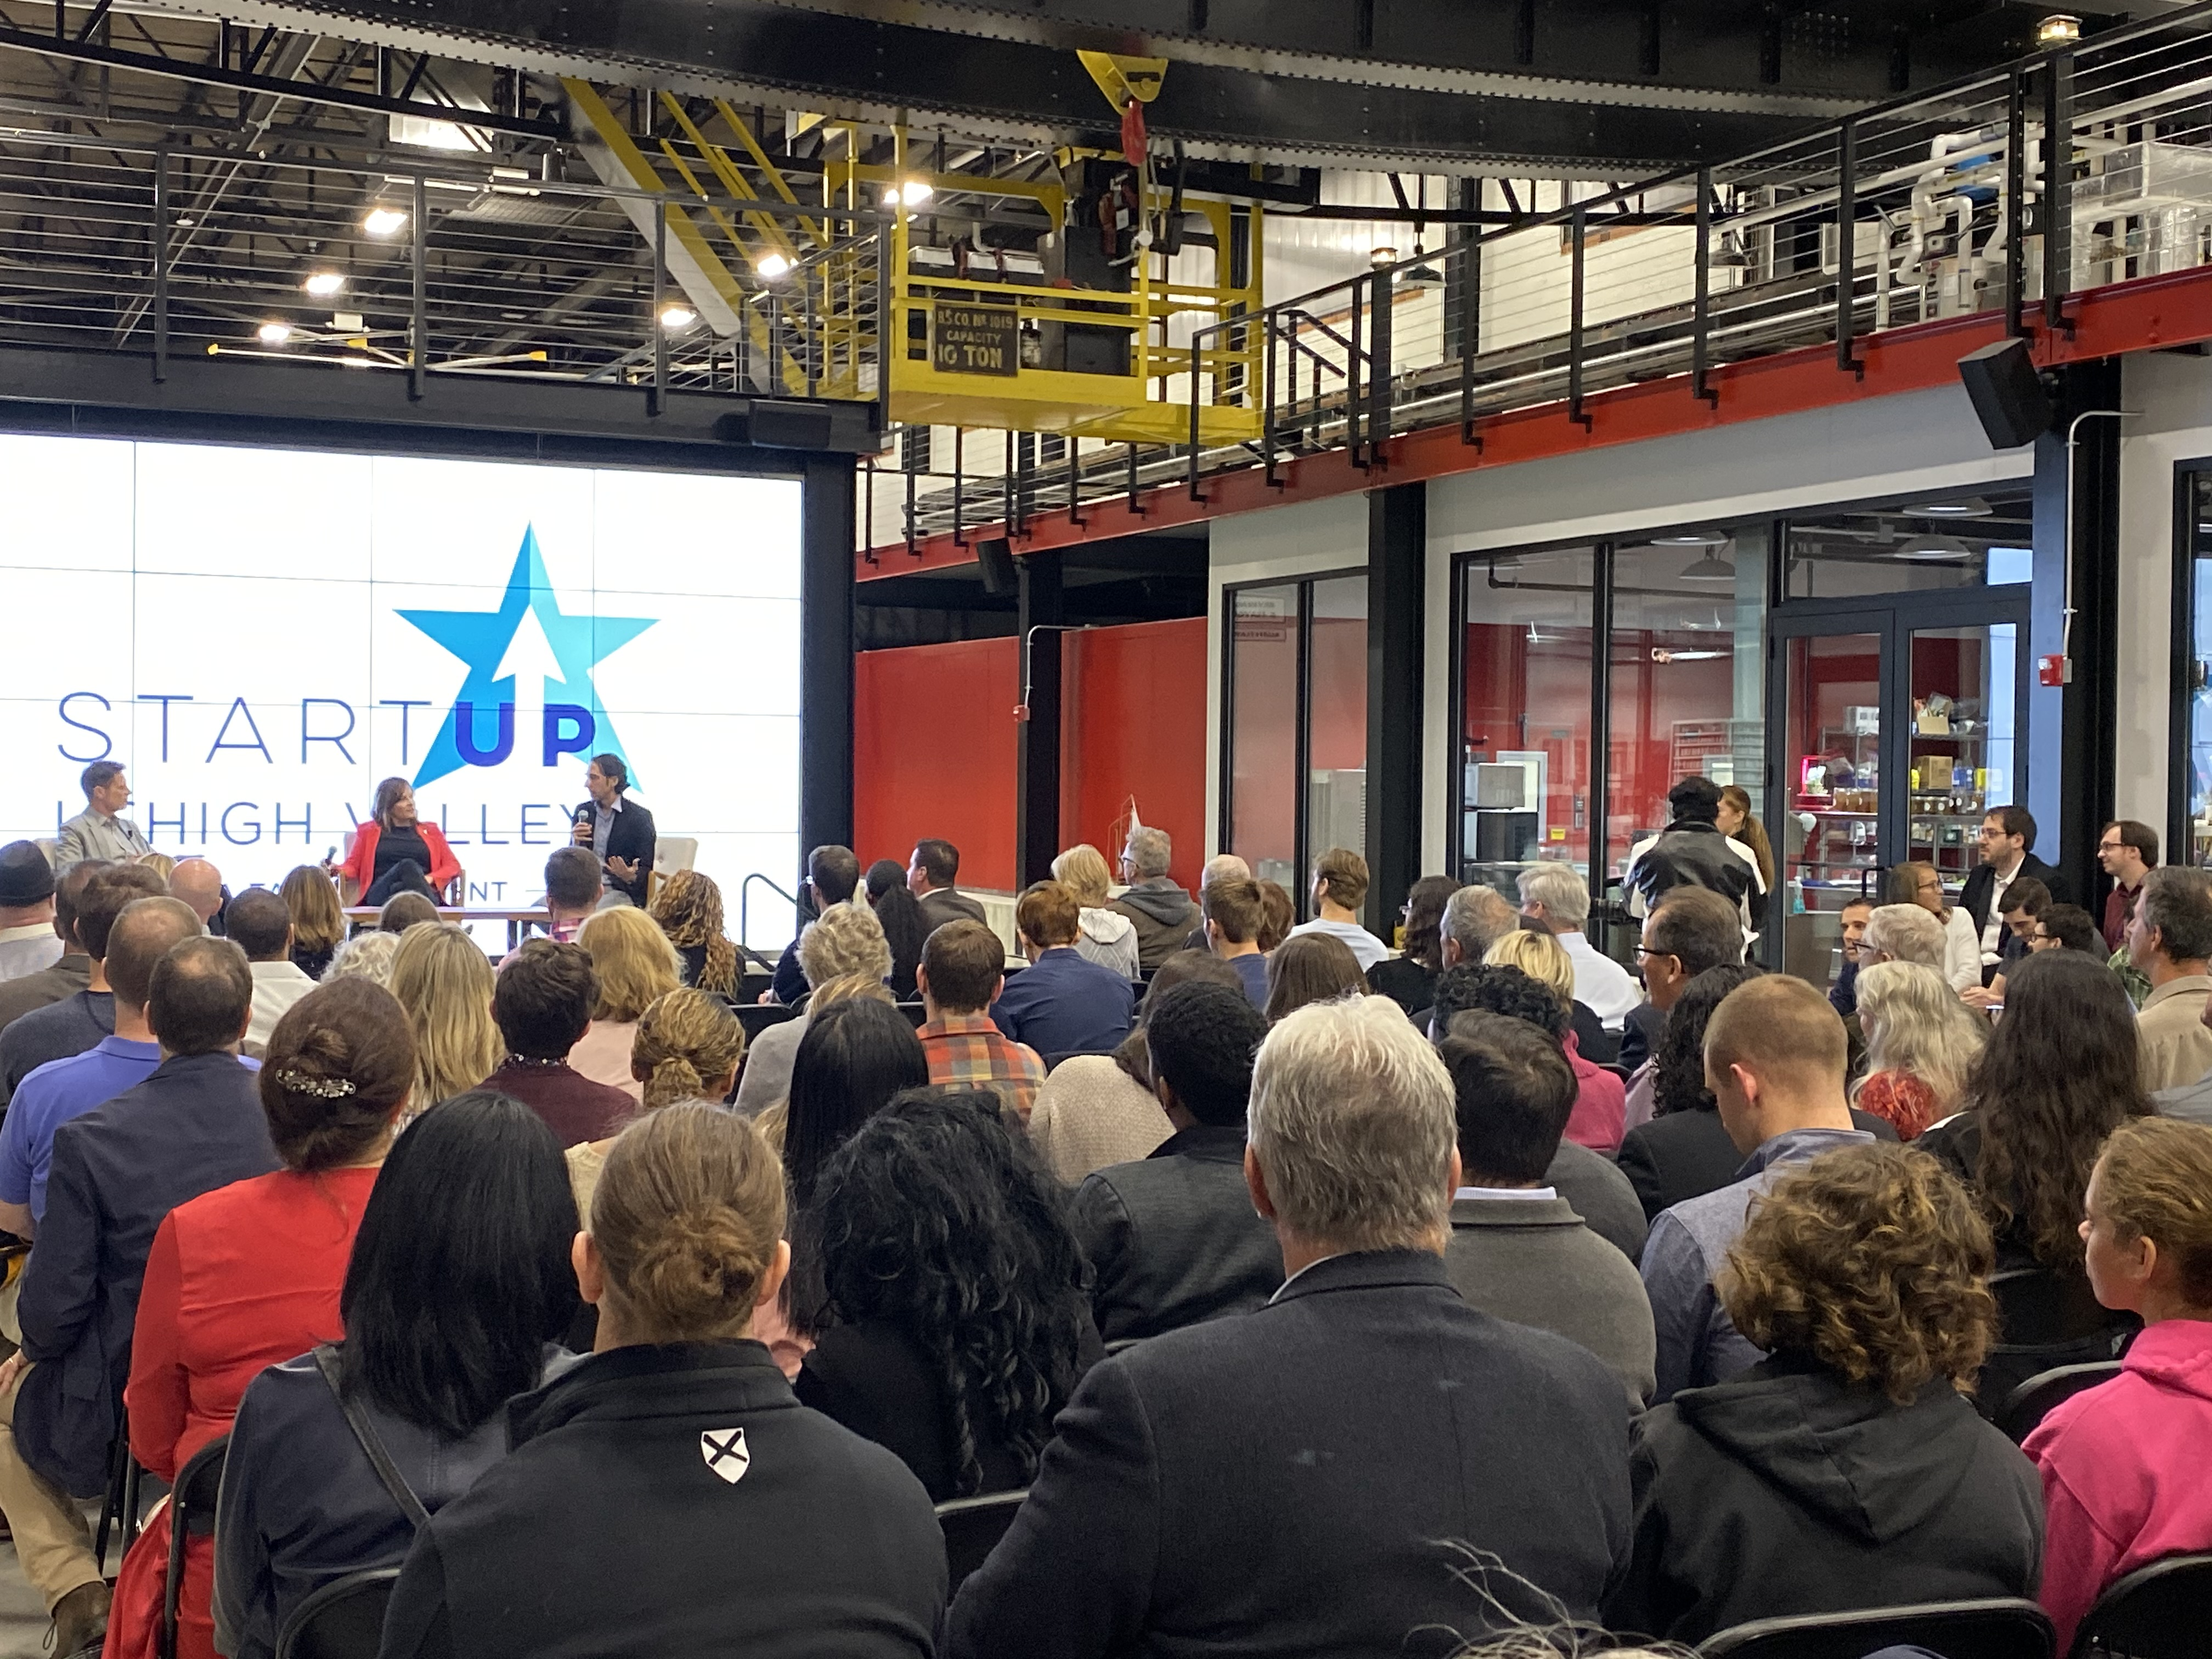 Startup Valley Event Seeks To Position Lehigh Valley As Innovation